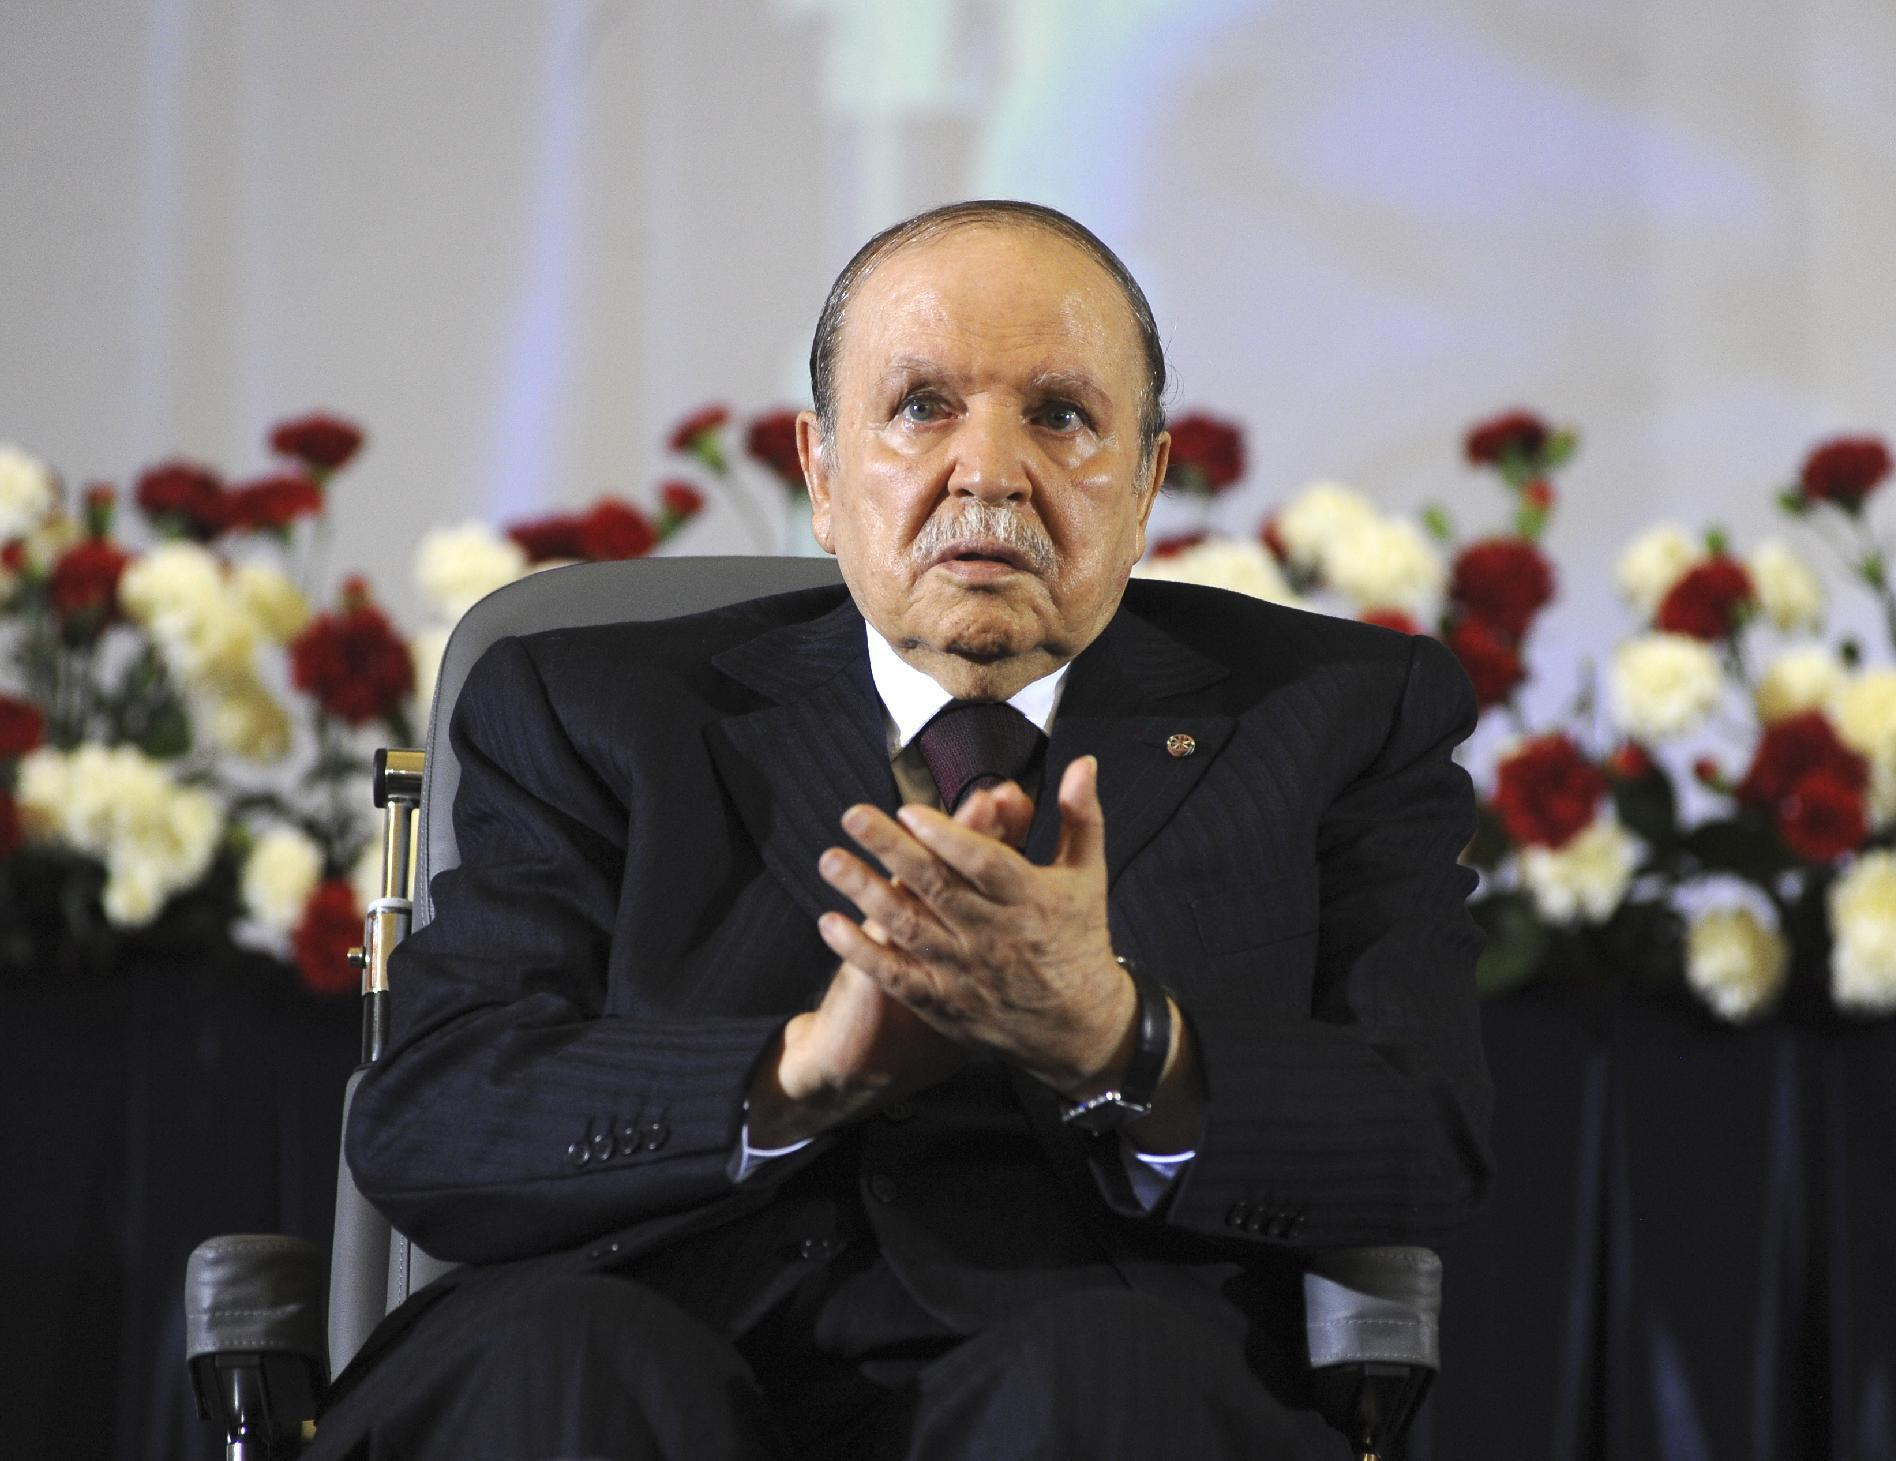 Algeria sees leadership vacuum in face of oil challenges